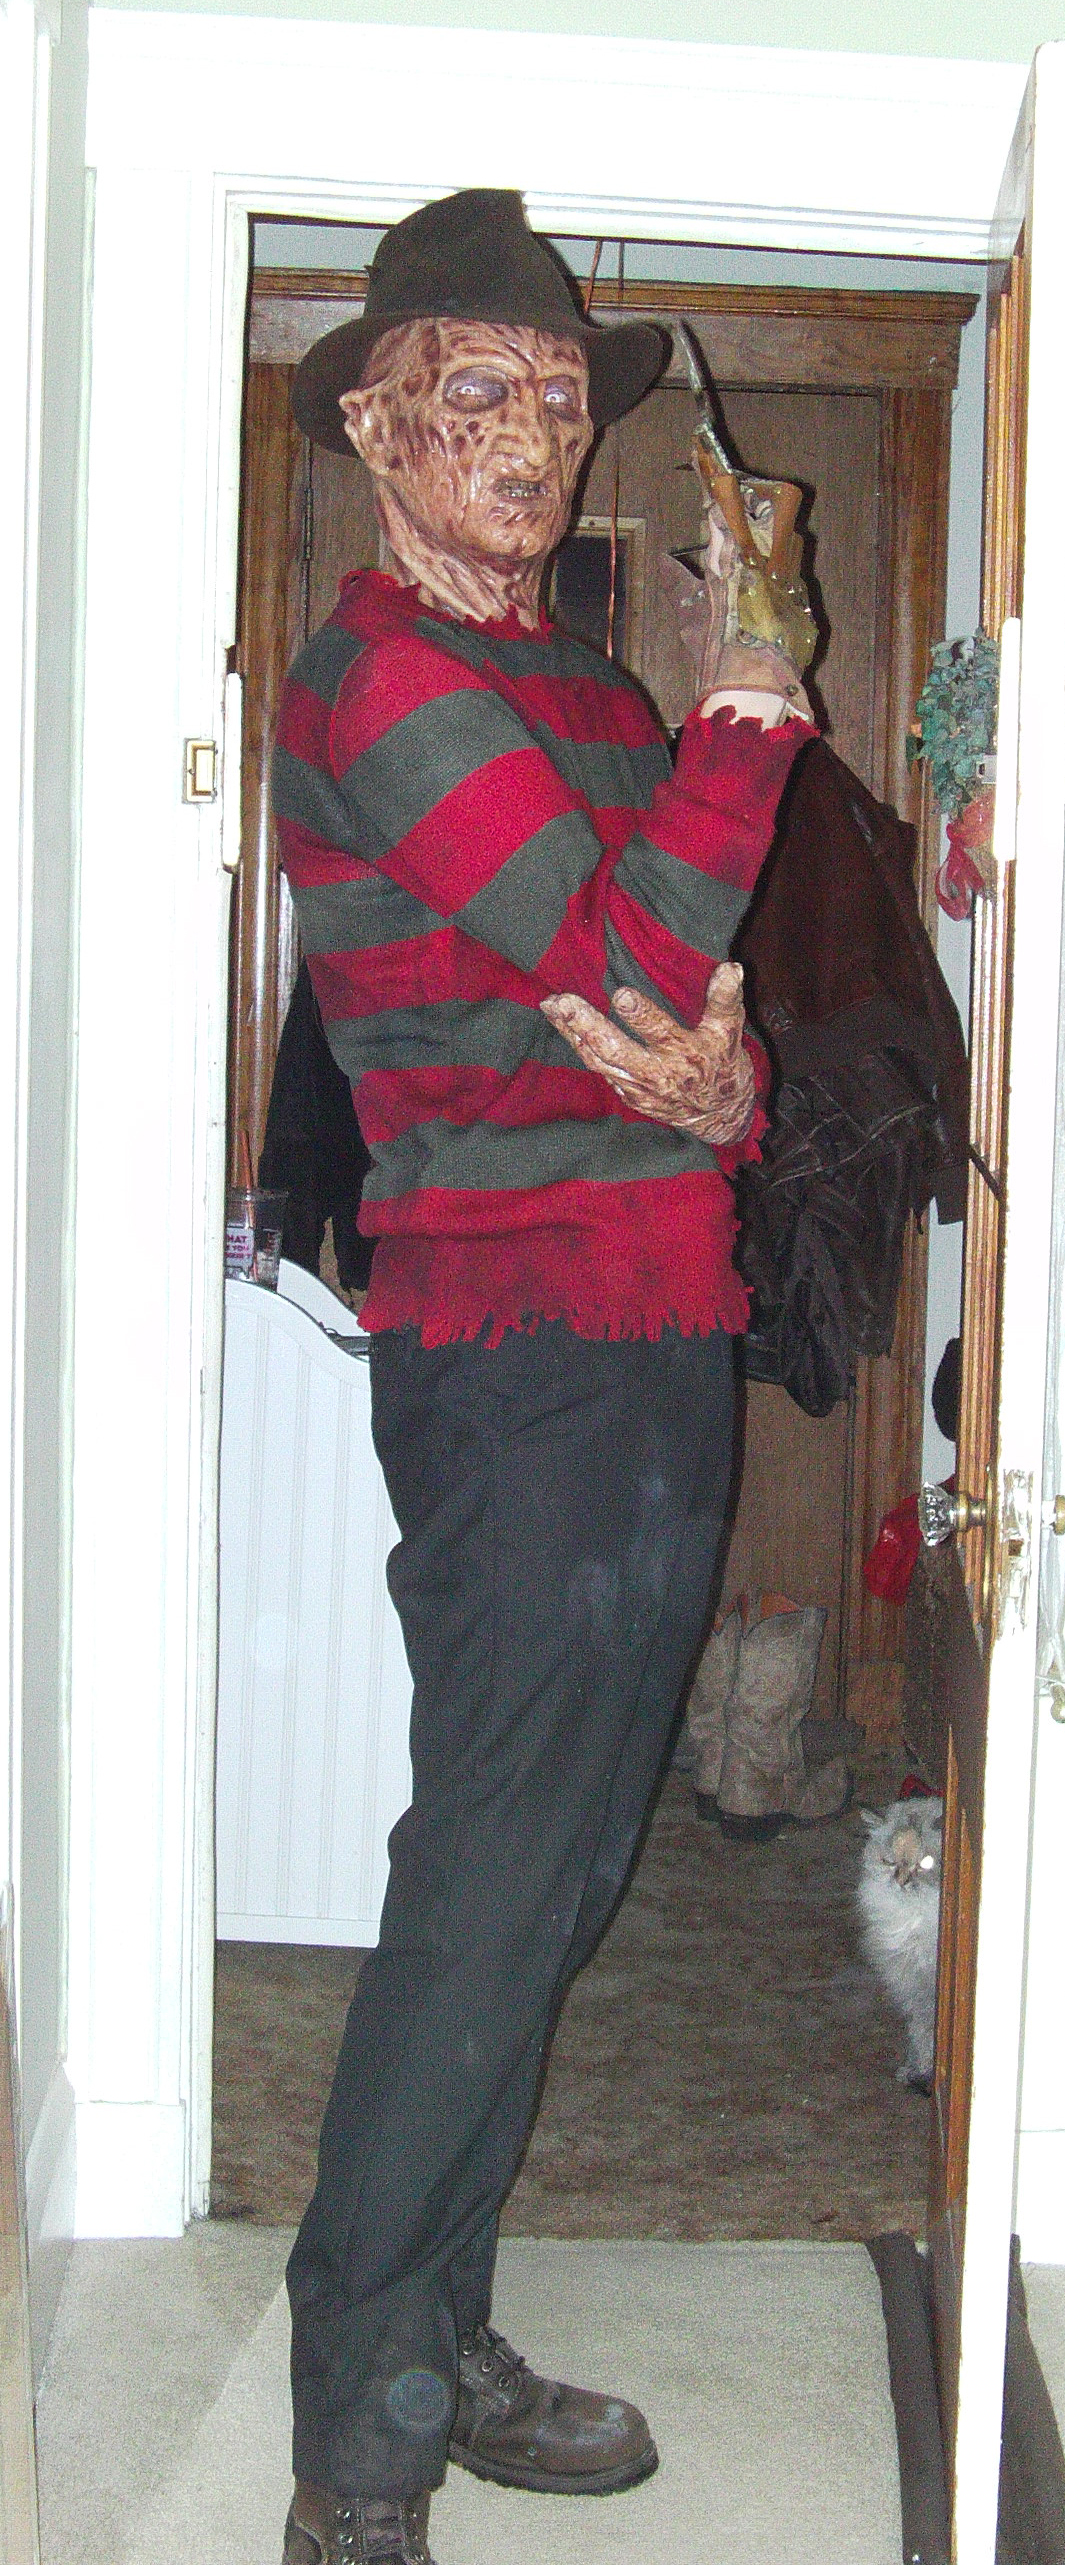 My Freddy costume